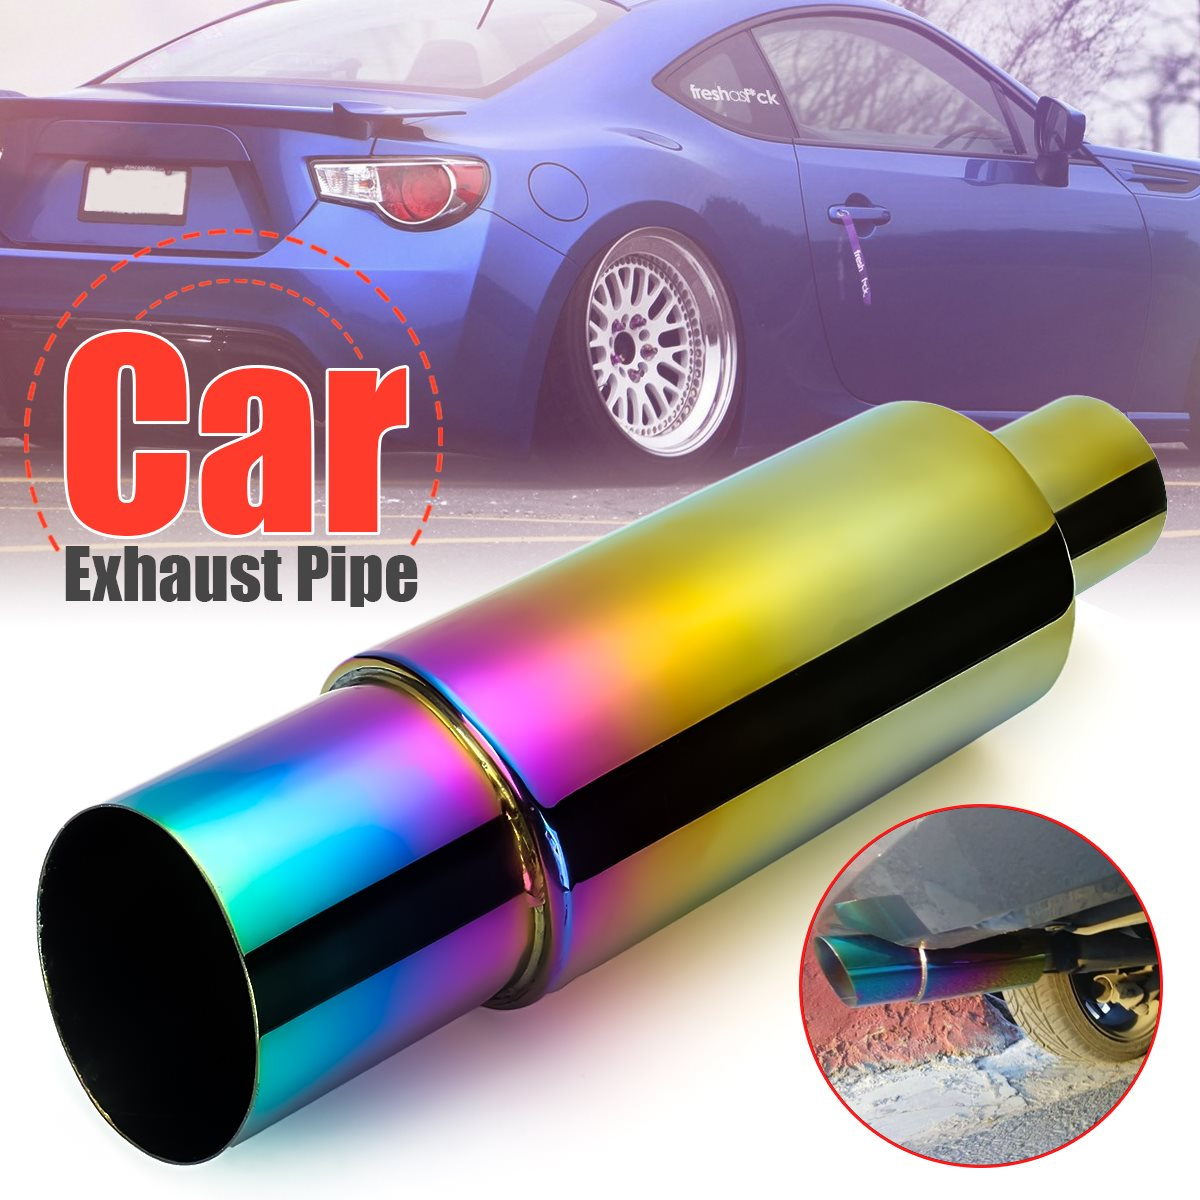 Universal Car Exhaust Pipe Racing Muffler Tip Car Exhaust Pipe Replacement 304 Stainless Steel Car Exterior Accessories stylish stainless steel car exhaust pipe muffler tip for santana toyota mazda chery more